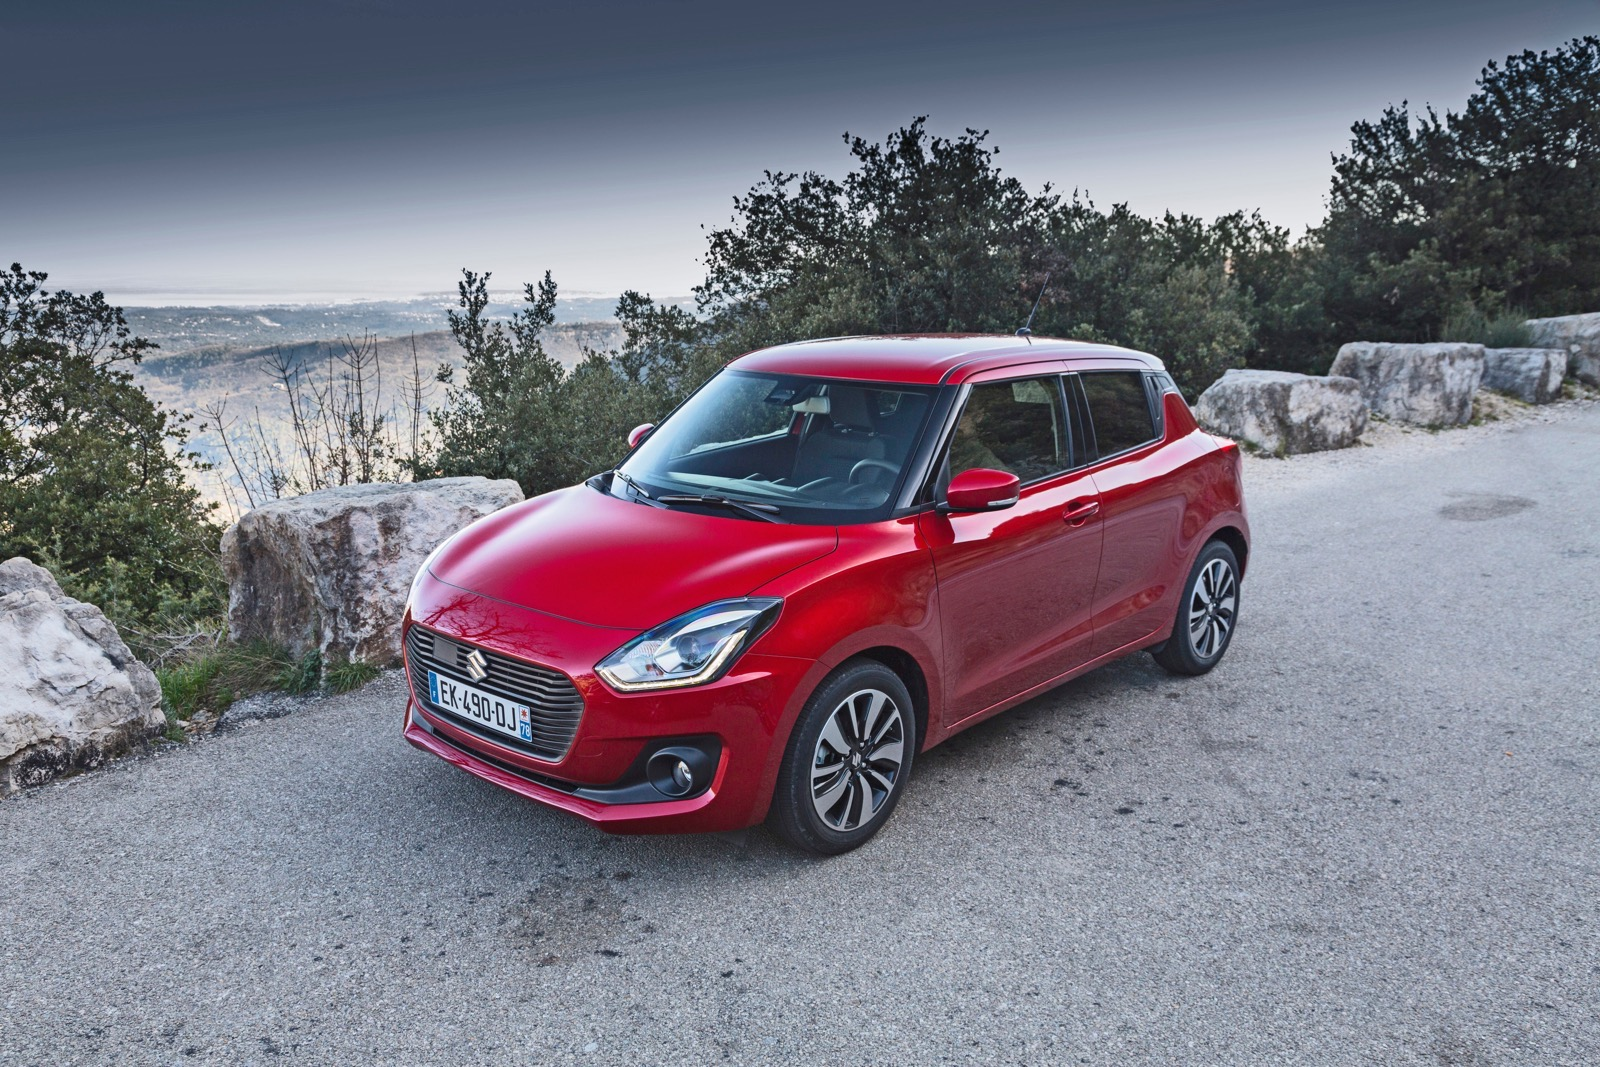 Suzuki_Swift_greek_presentation_19